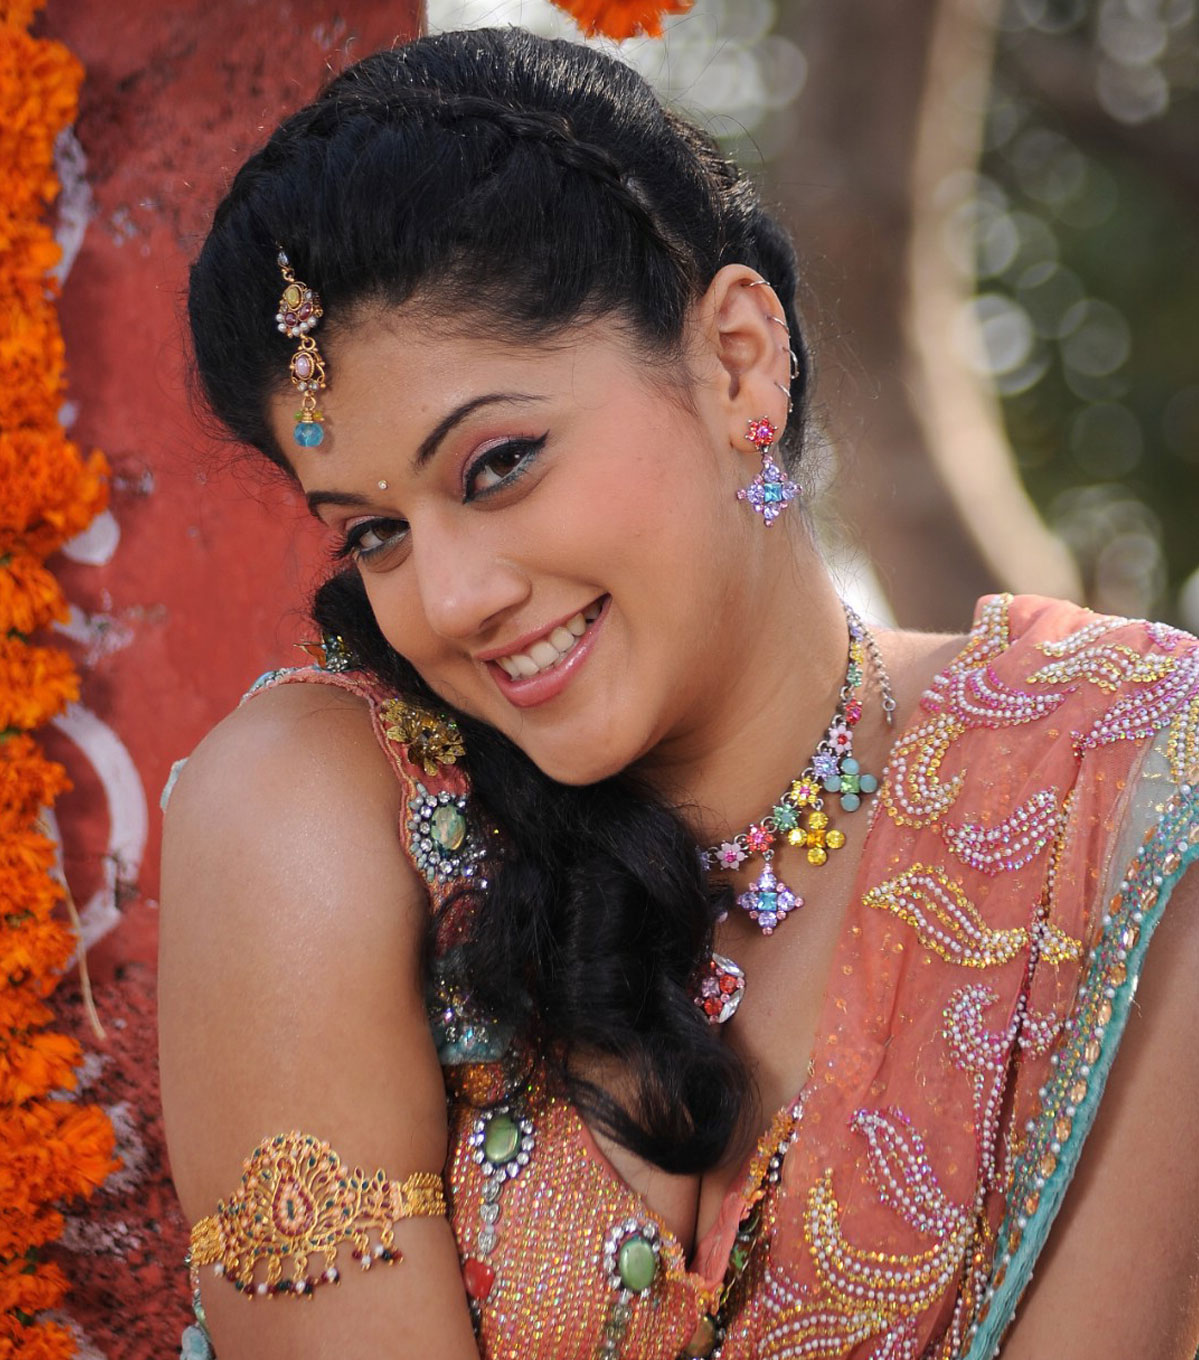 taapsee pannu hd wallpapers and latest photos download free